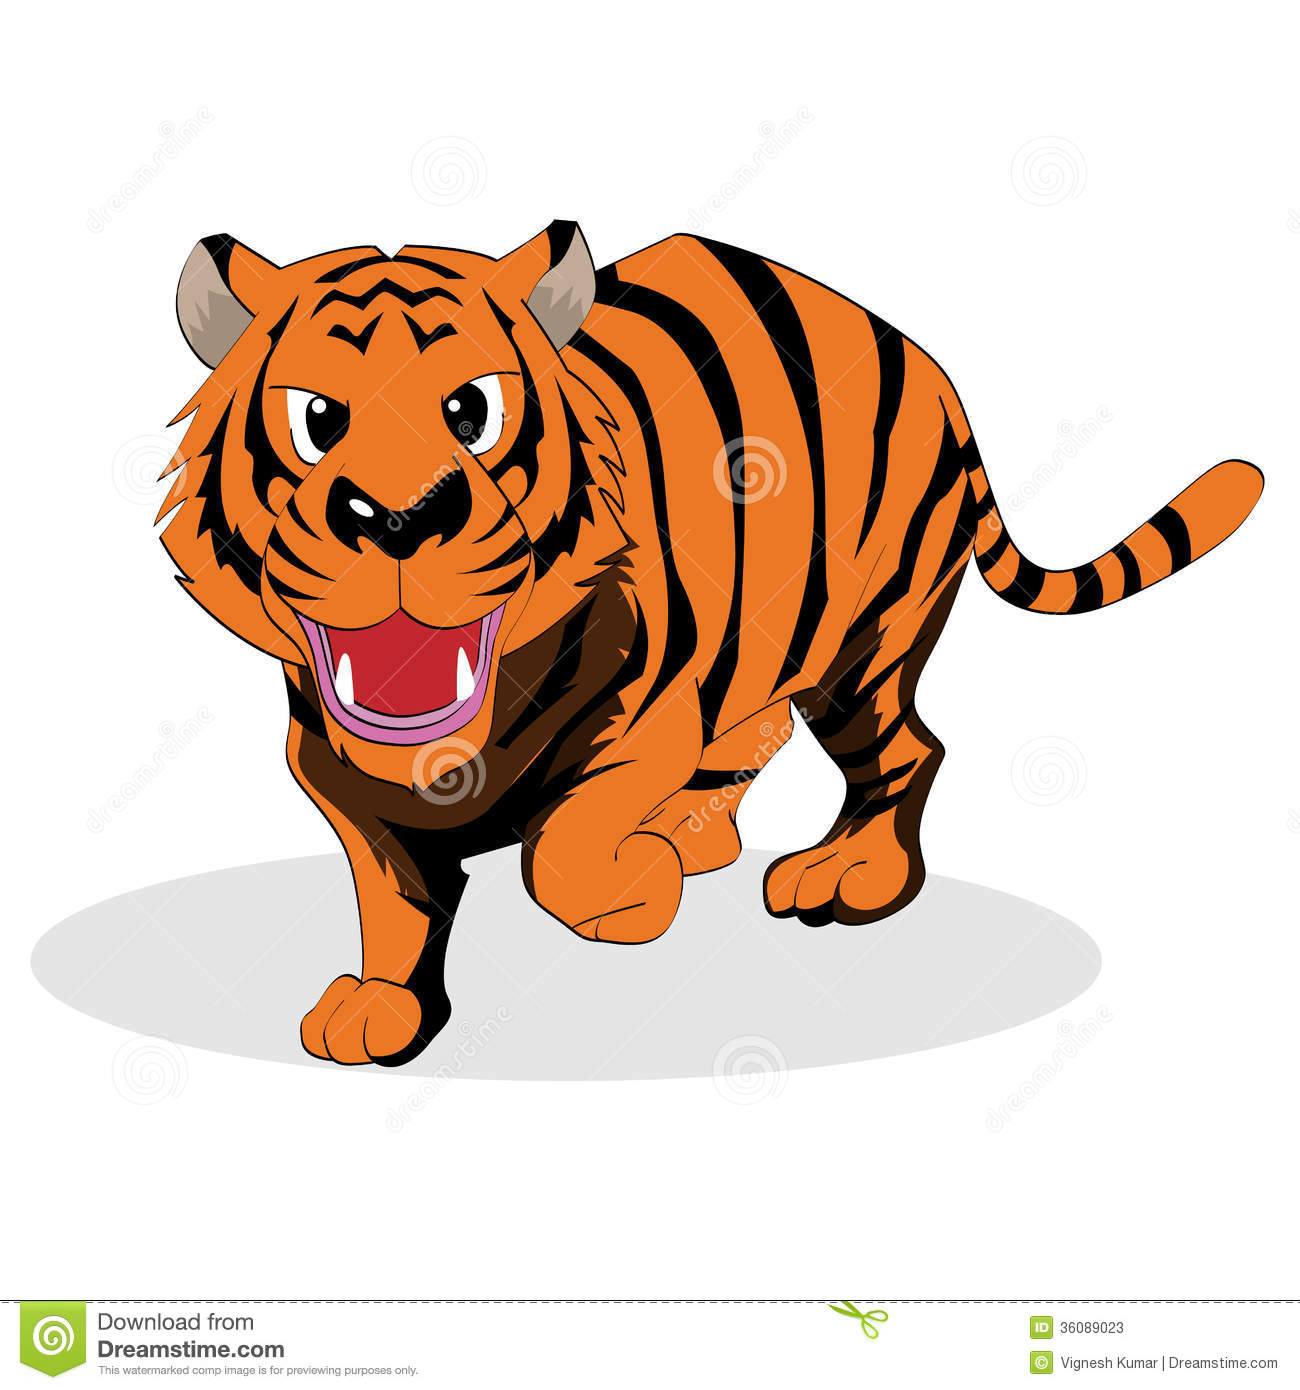 Tattoo Designs Vignesh: Tiger Stock Photos